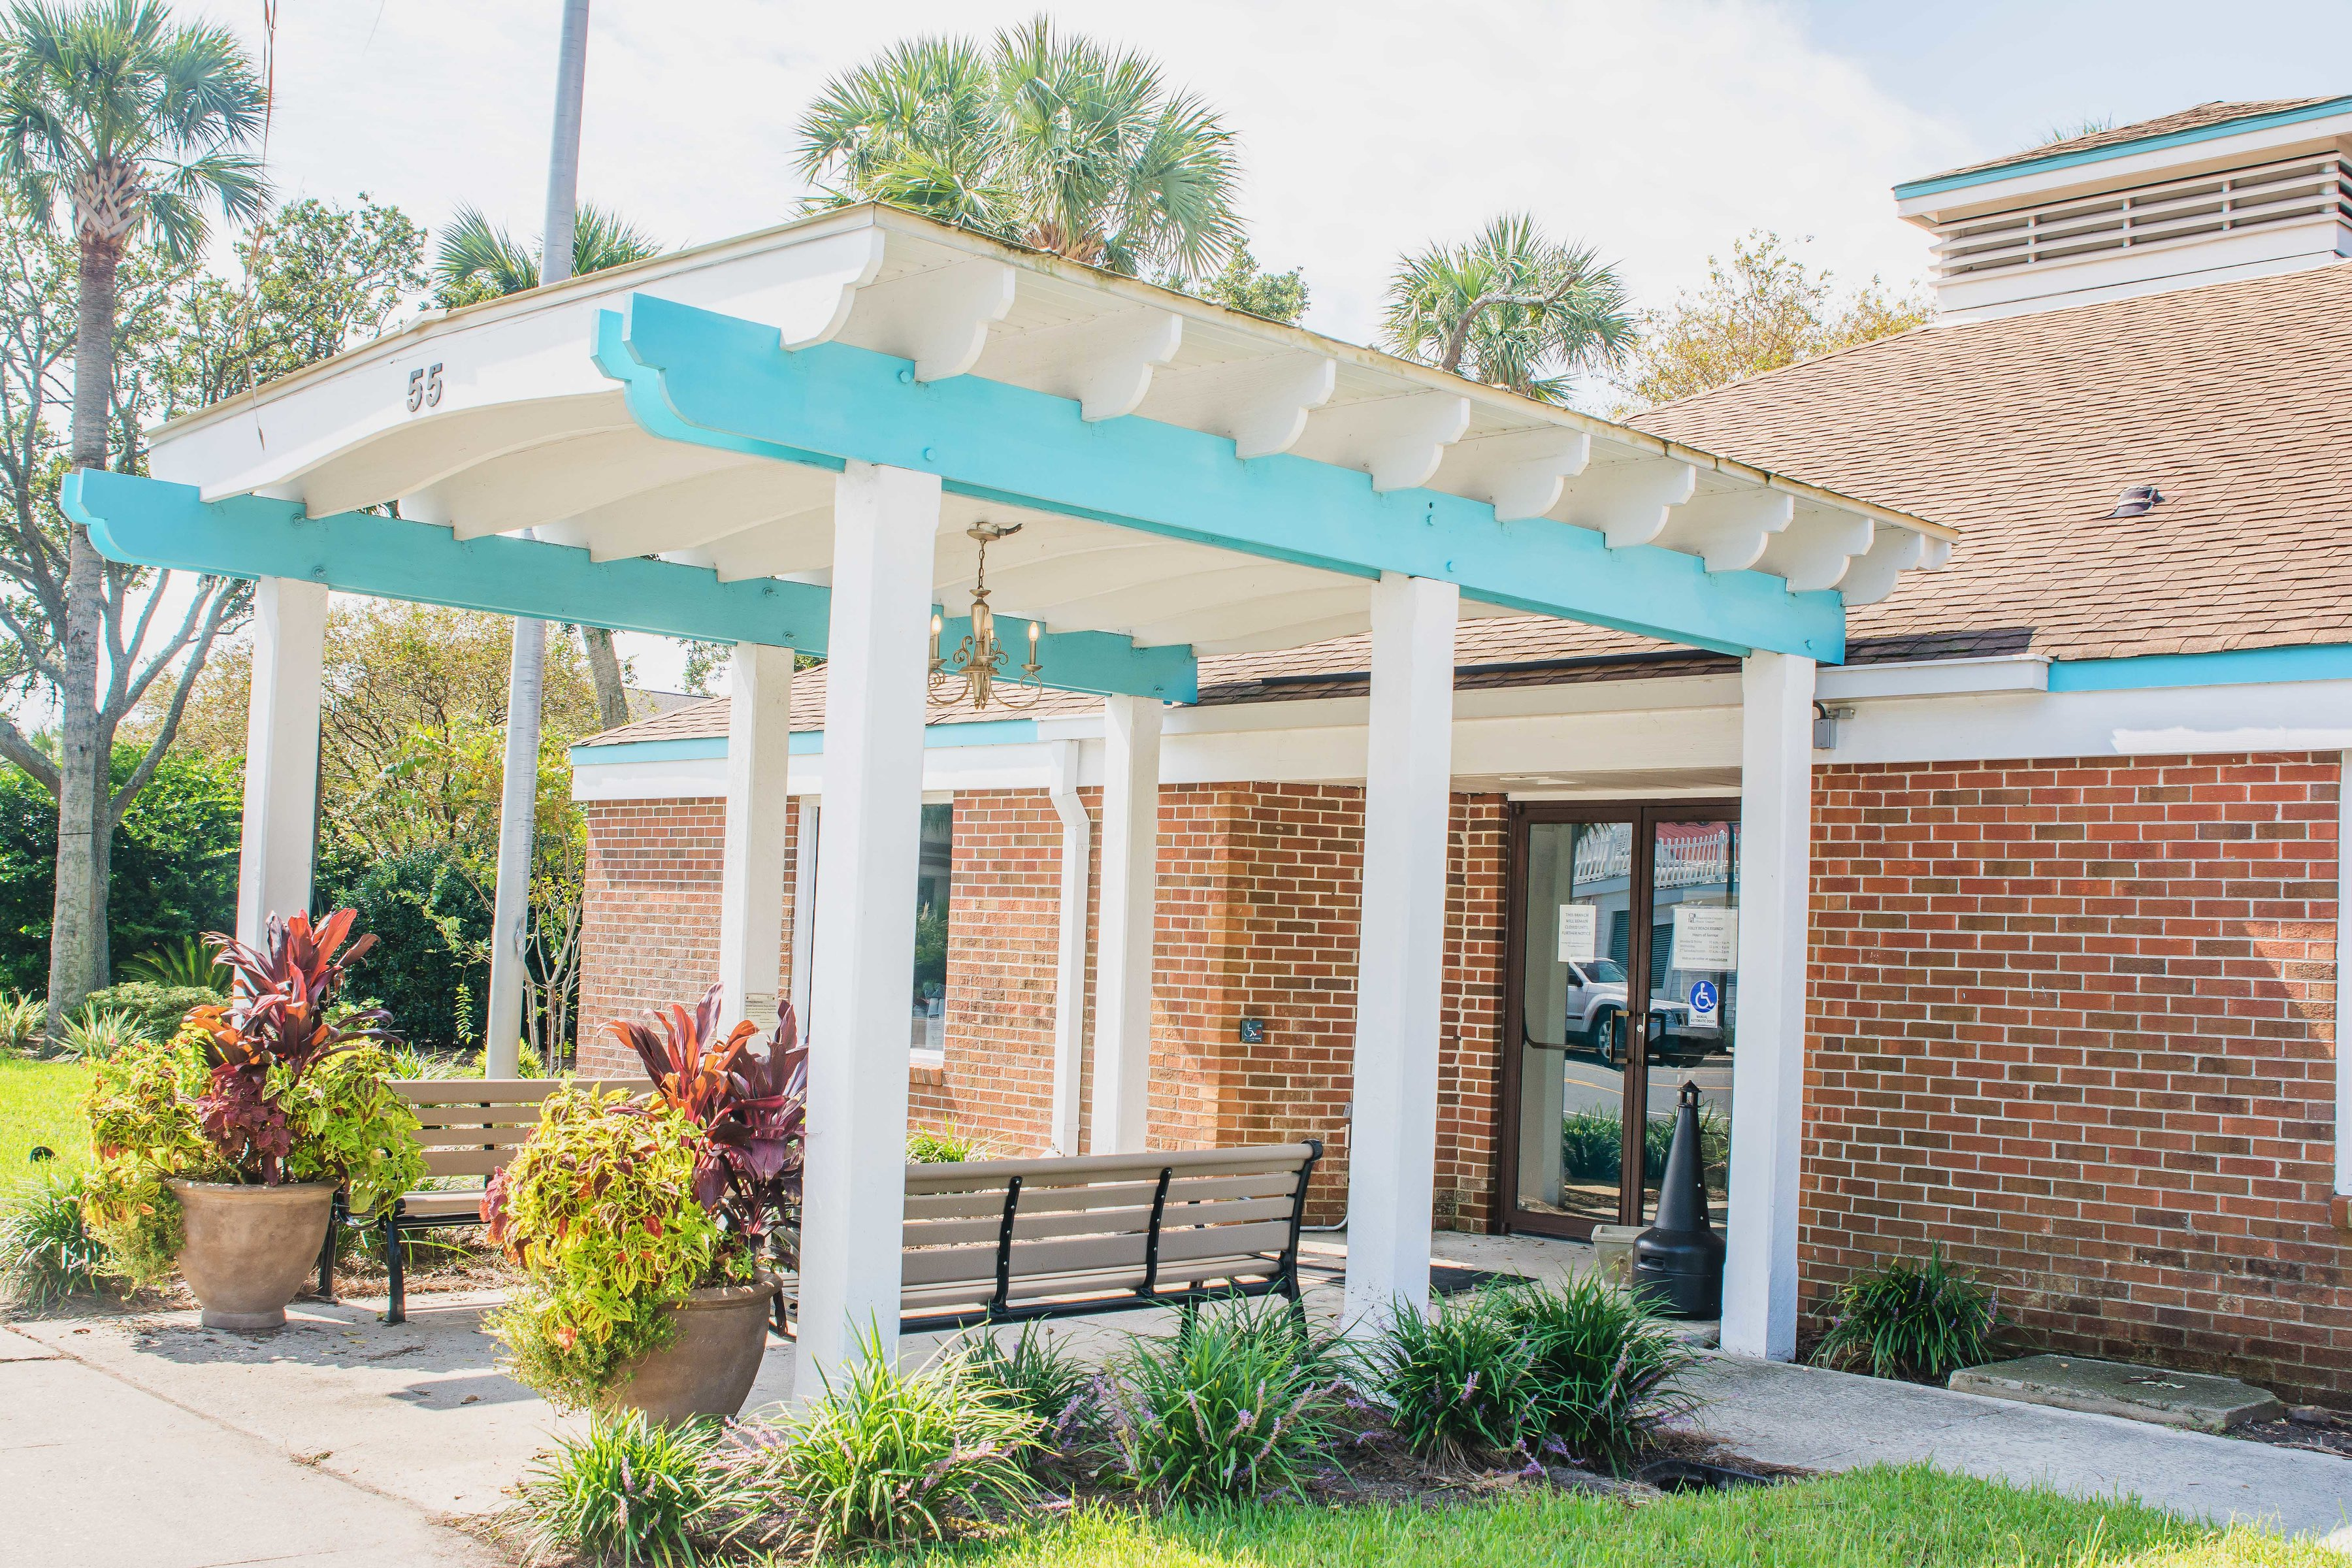 Folly Beach Library reopens for in-person services on July 6